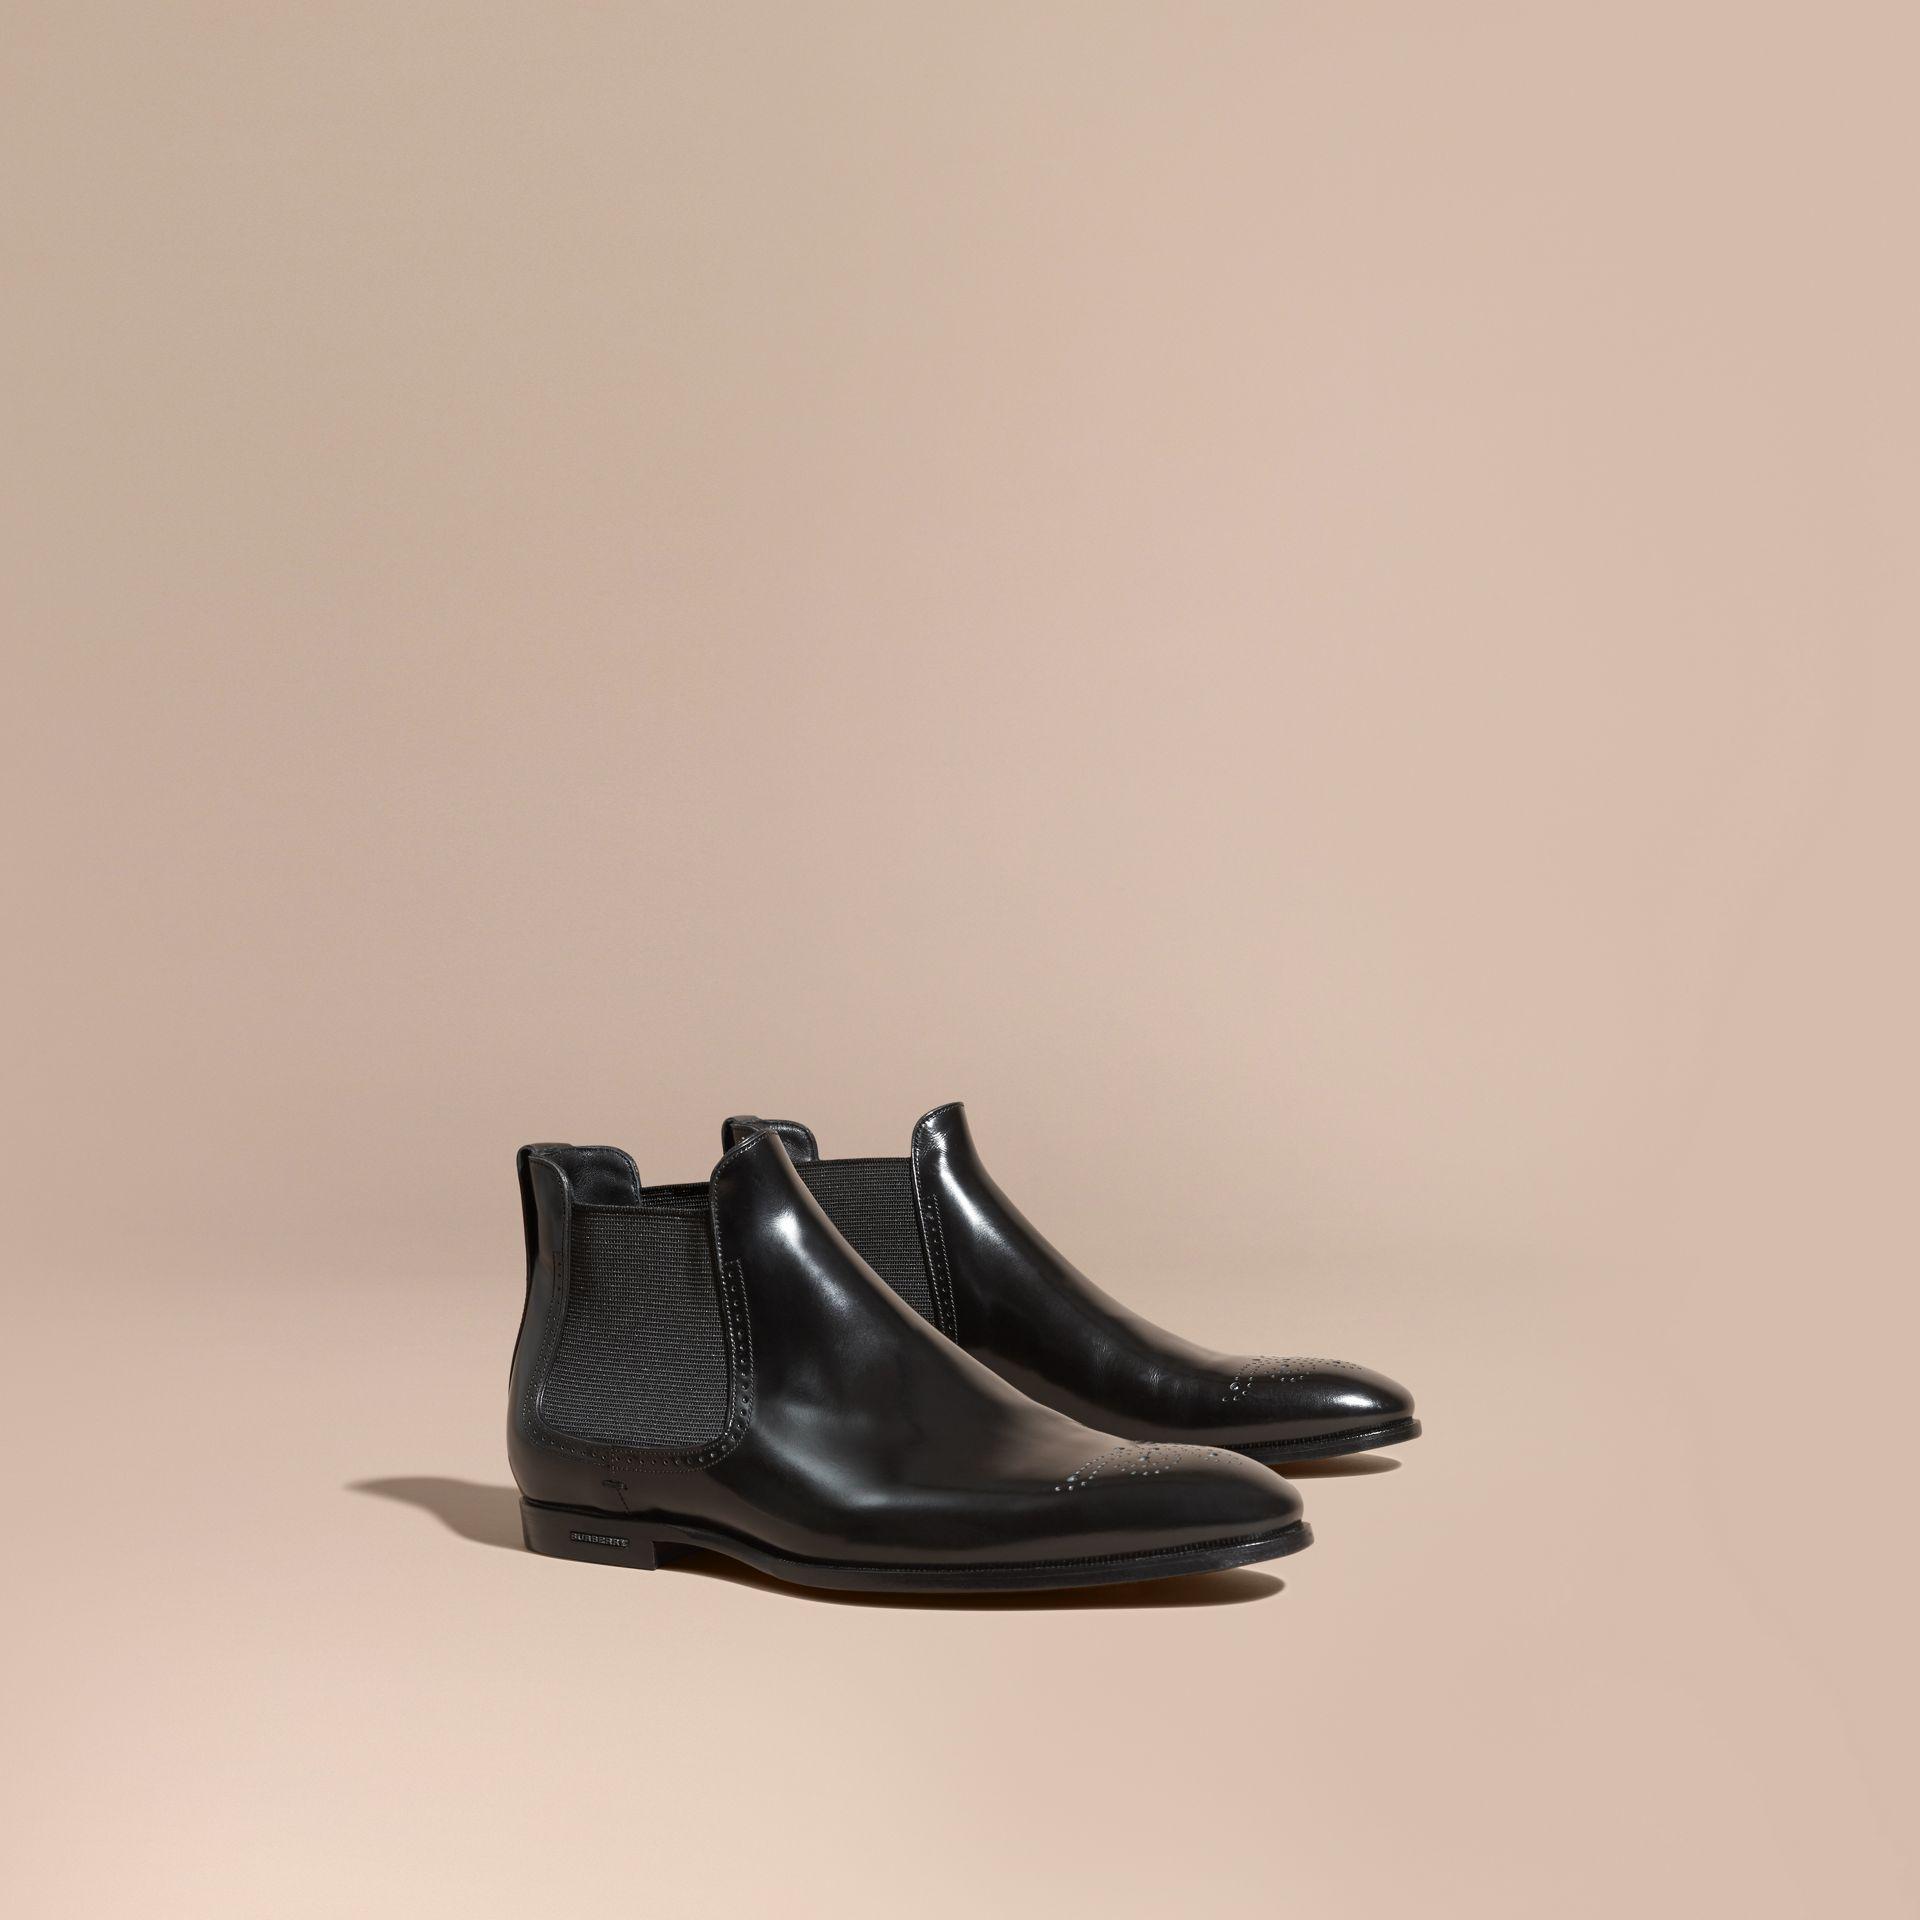 Perforated Detail Leather Chelsea Boots in Black - Men | Burberry - gallery image 1